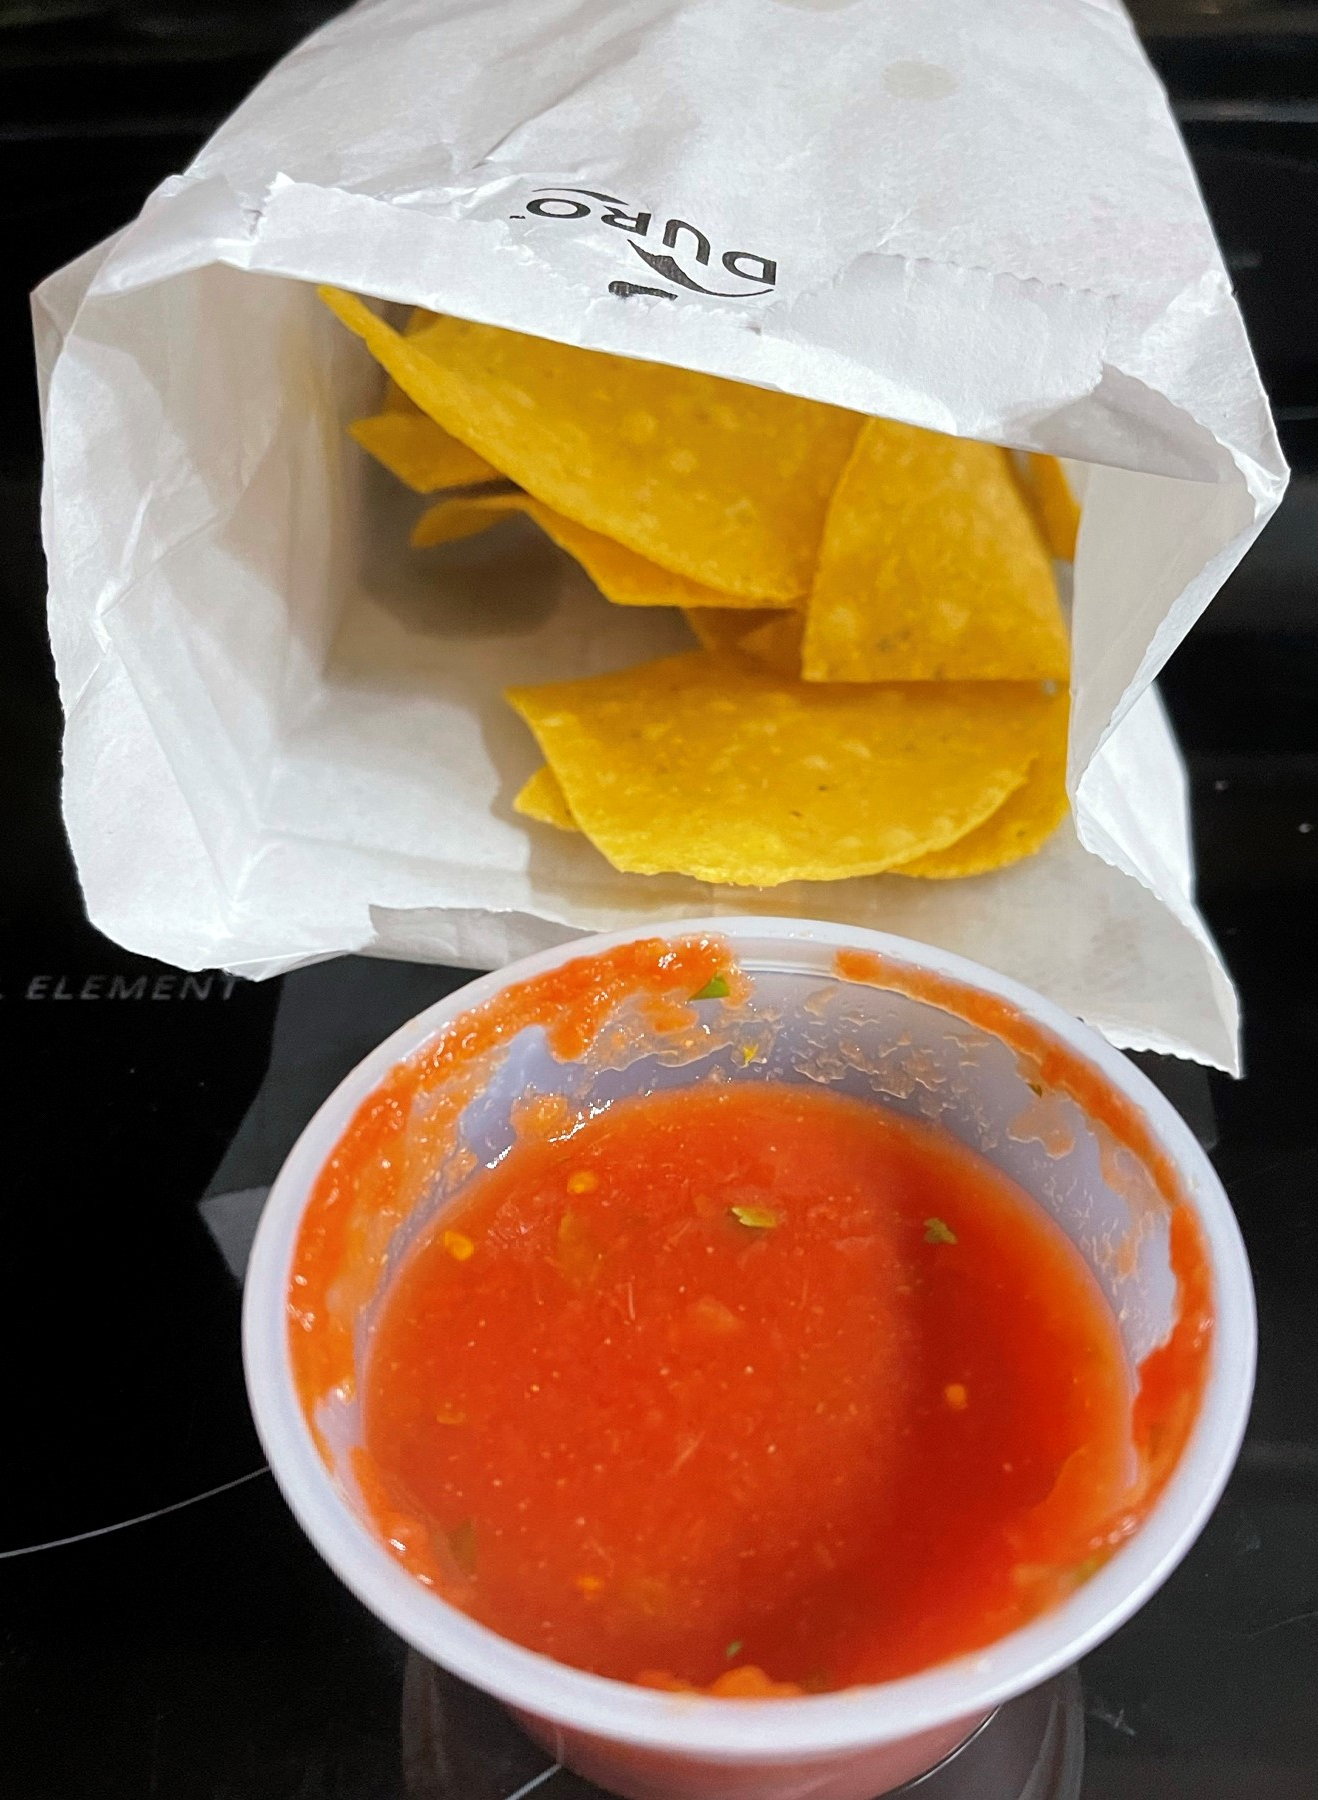 Chips and salsa from Sr. Tequila Mexican Grill